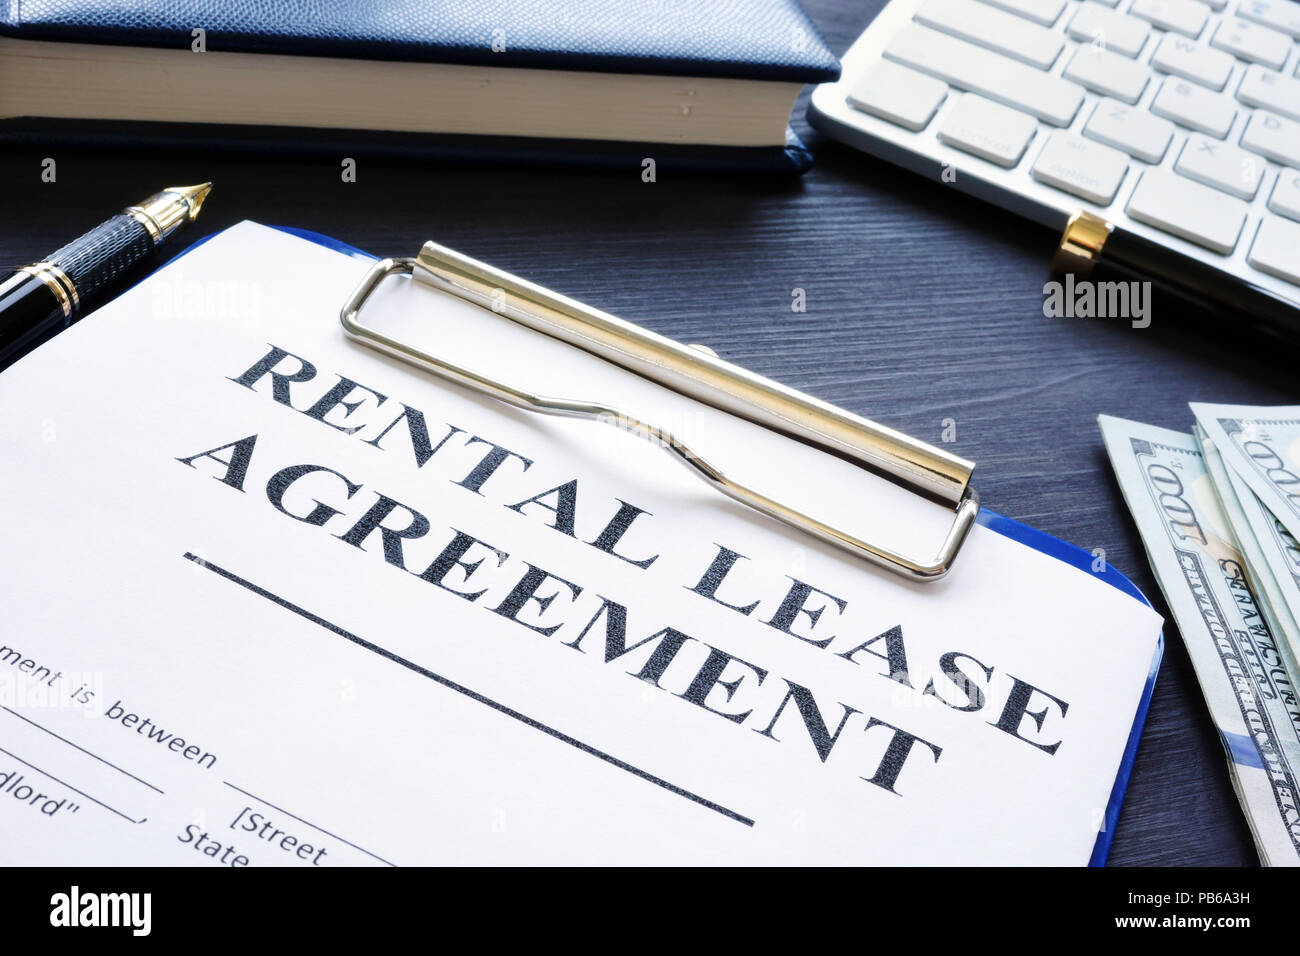 Rental Lease Agreement With Pen On A Desk Stock Photo 213425285 Alamy